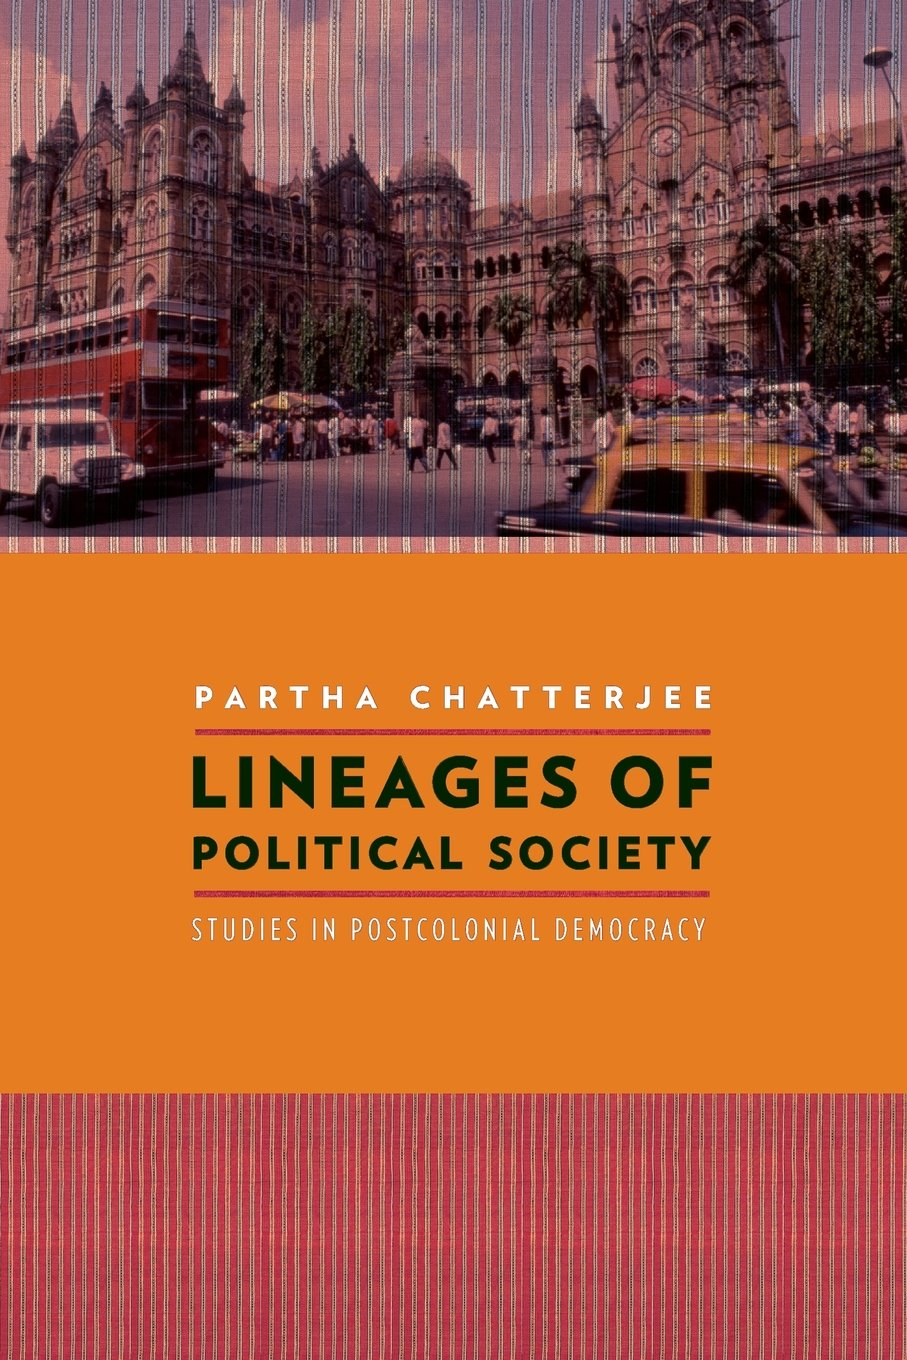 Lineages of Political Society: Studies in Postcolonial Democracy (Cultures of History) PDF